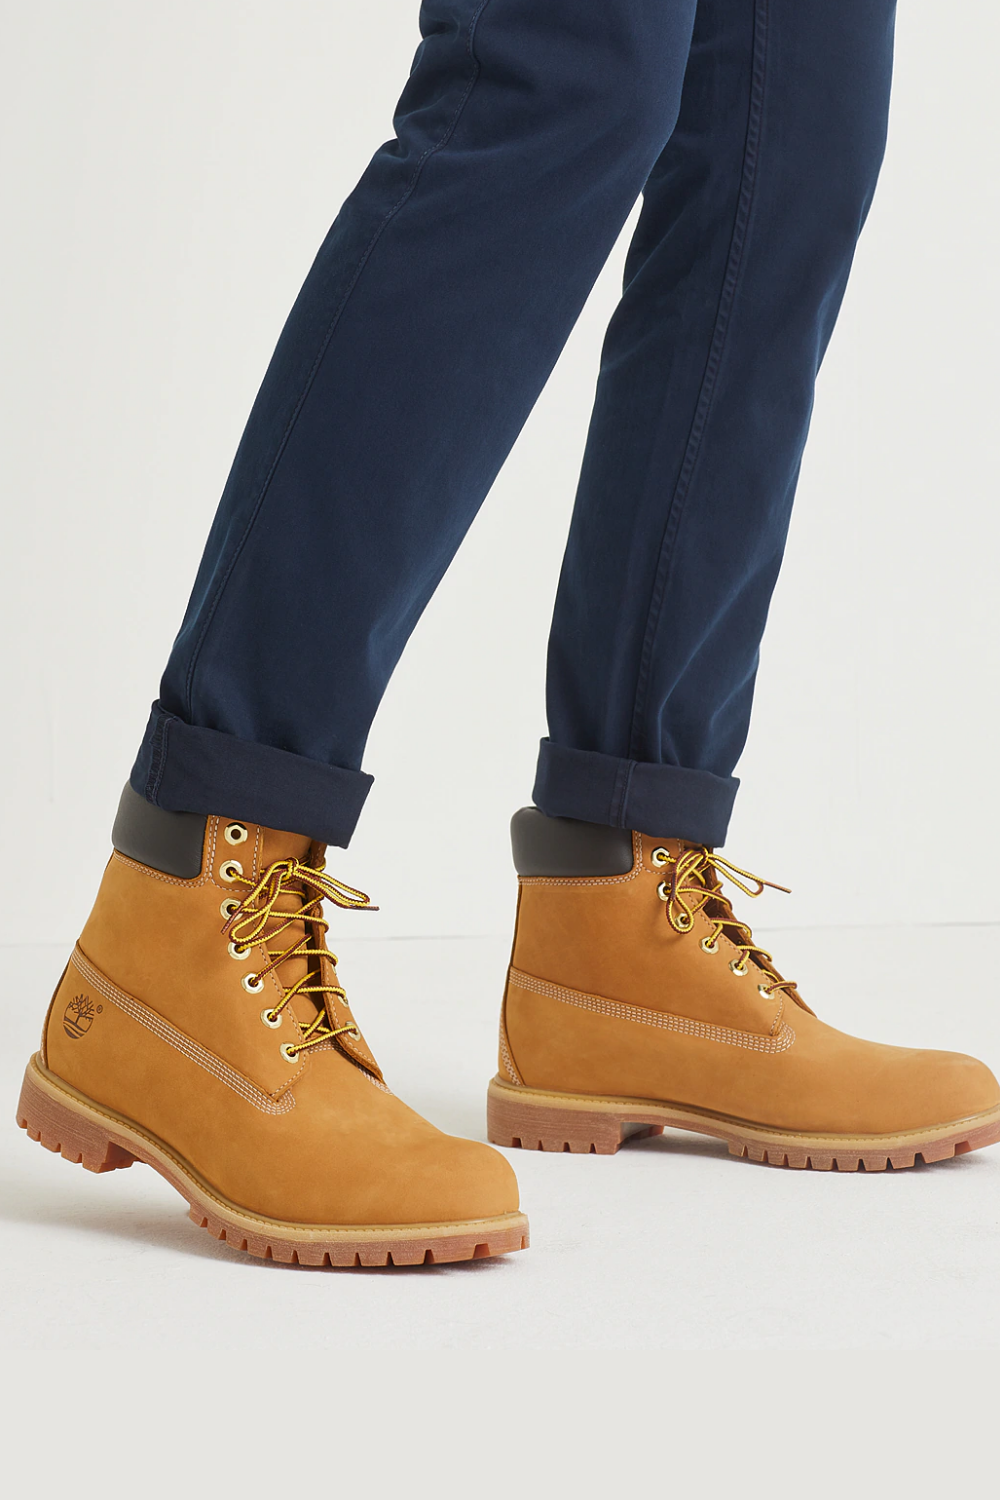 Mens Timberland Boots Outfit Timberland Boots Outfit Mens Boots Outfit Men Timberland Boots Mens